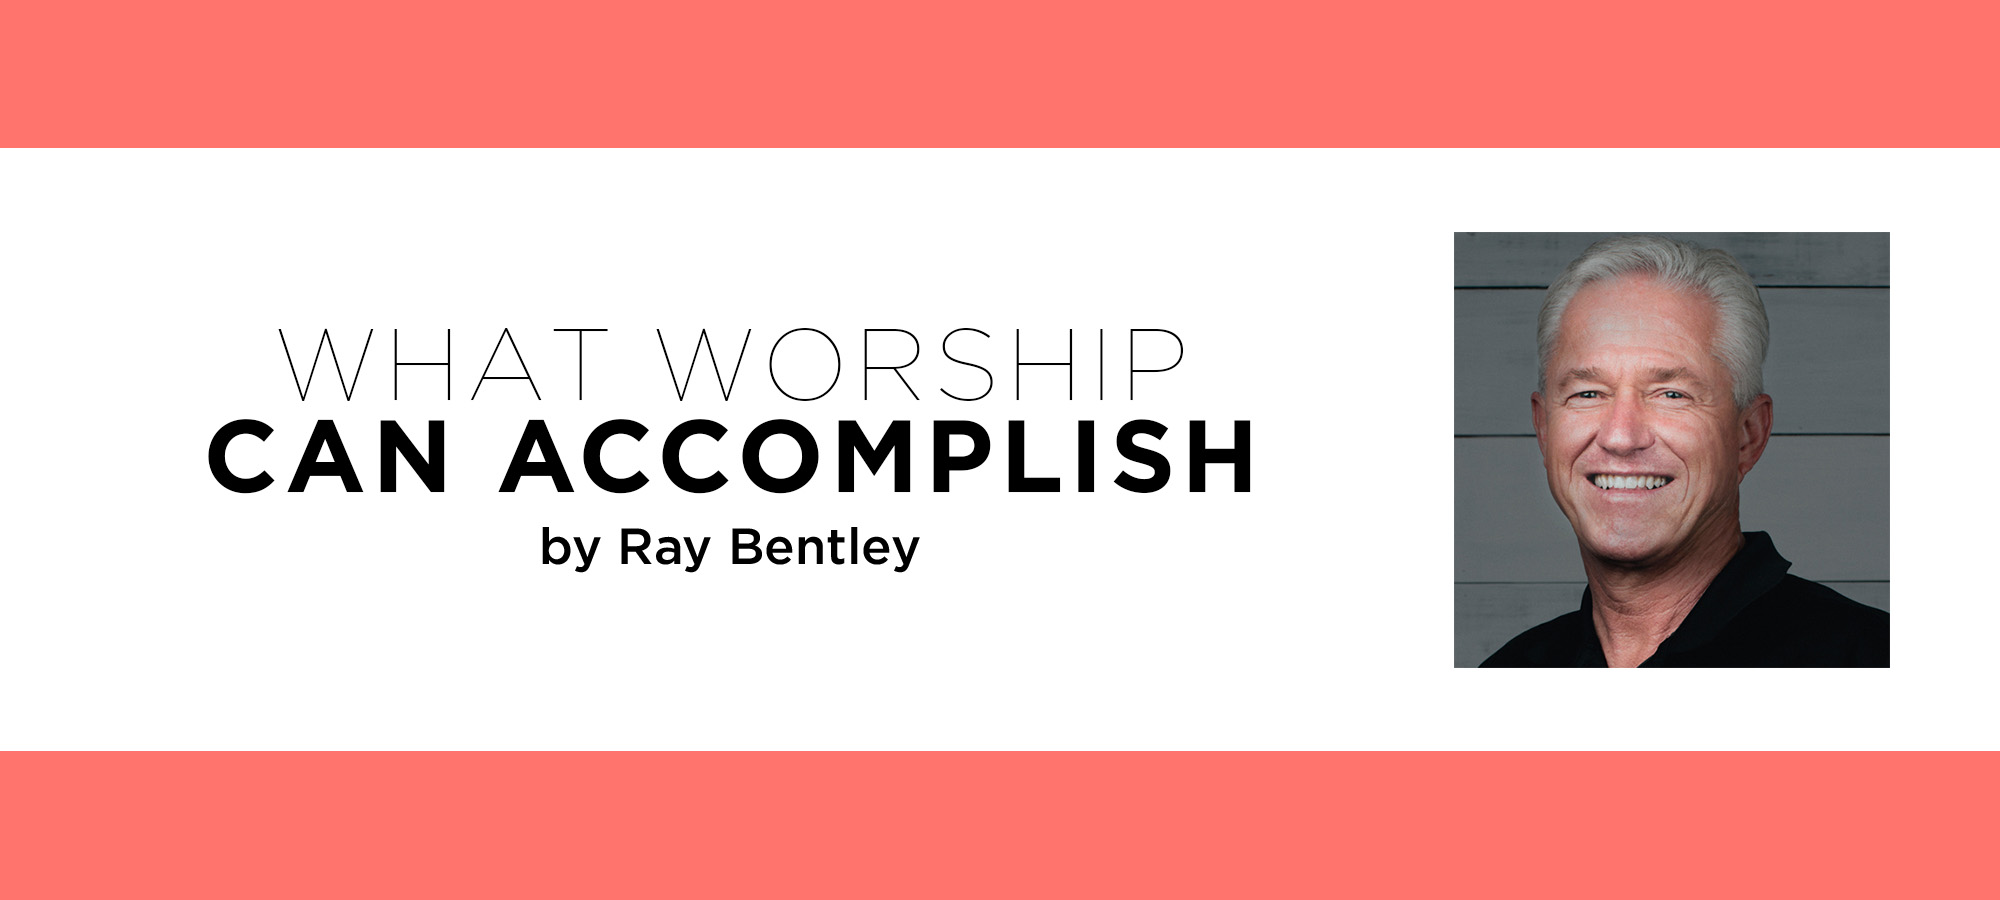 What Worship Can Accomplish